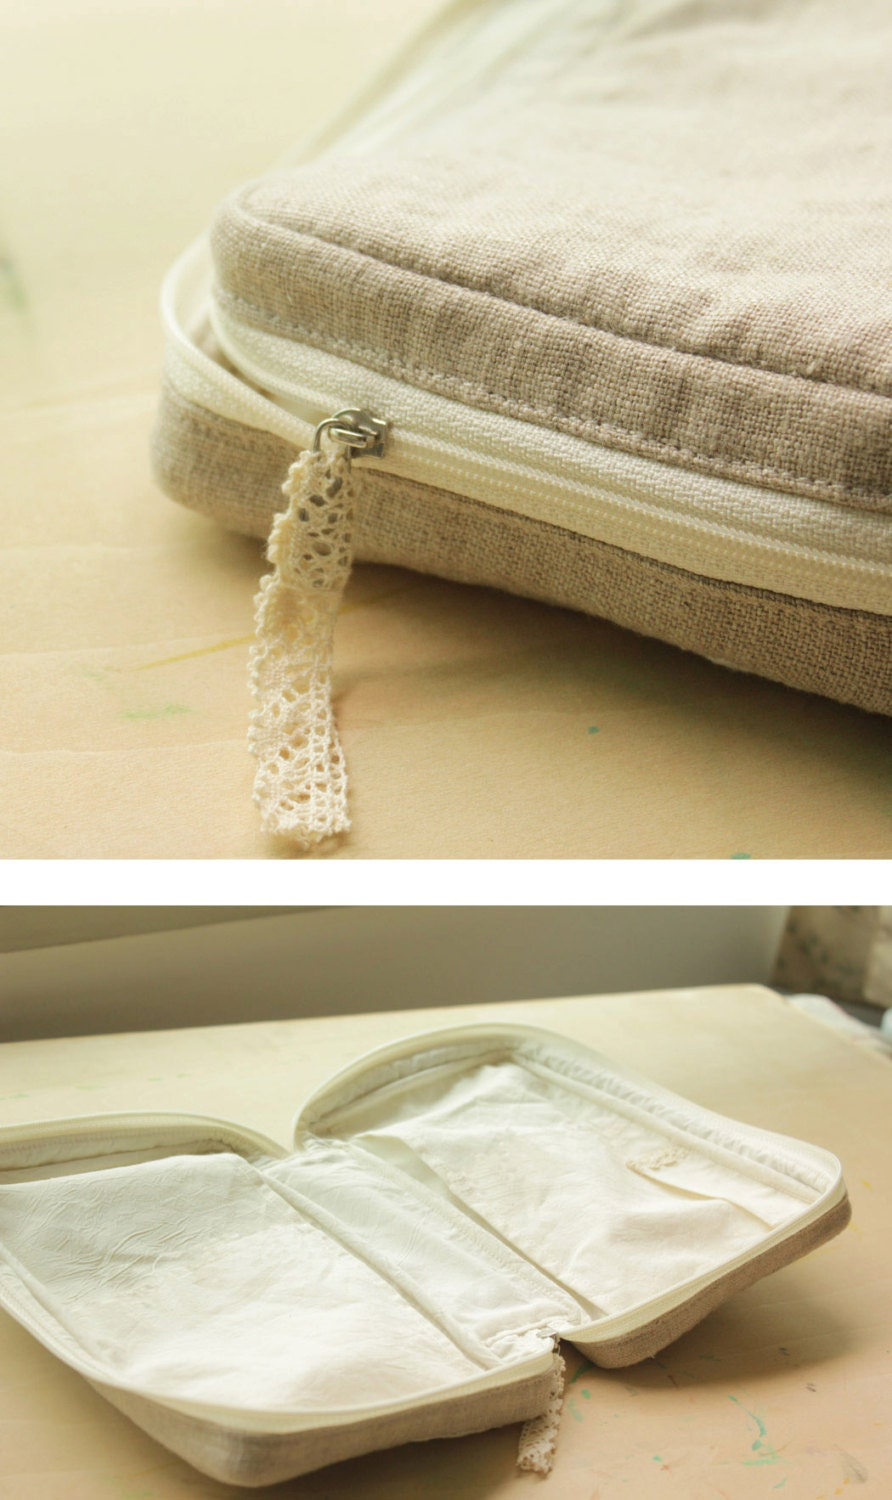 Book Cover With Handles Tutorial : Bible cover pattern sewing tutorial handle